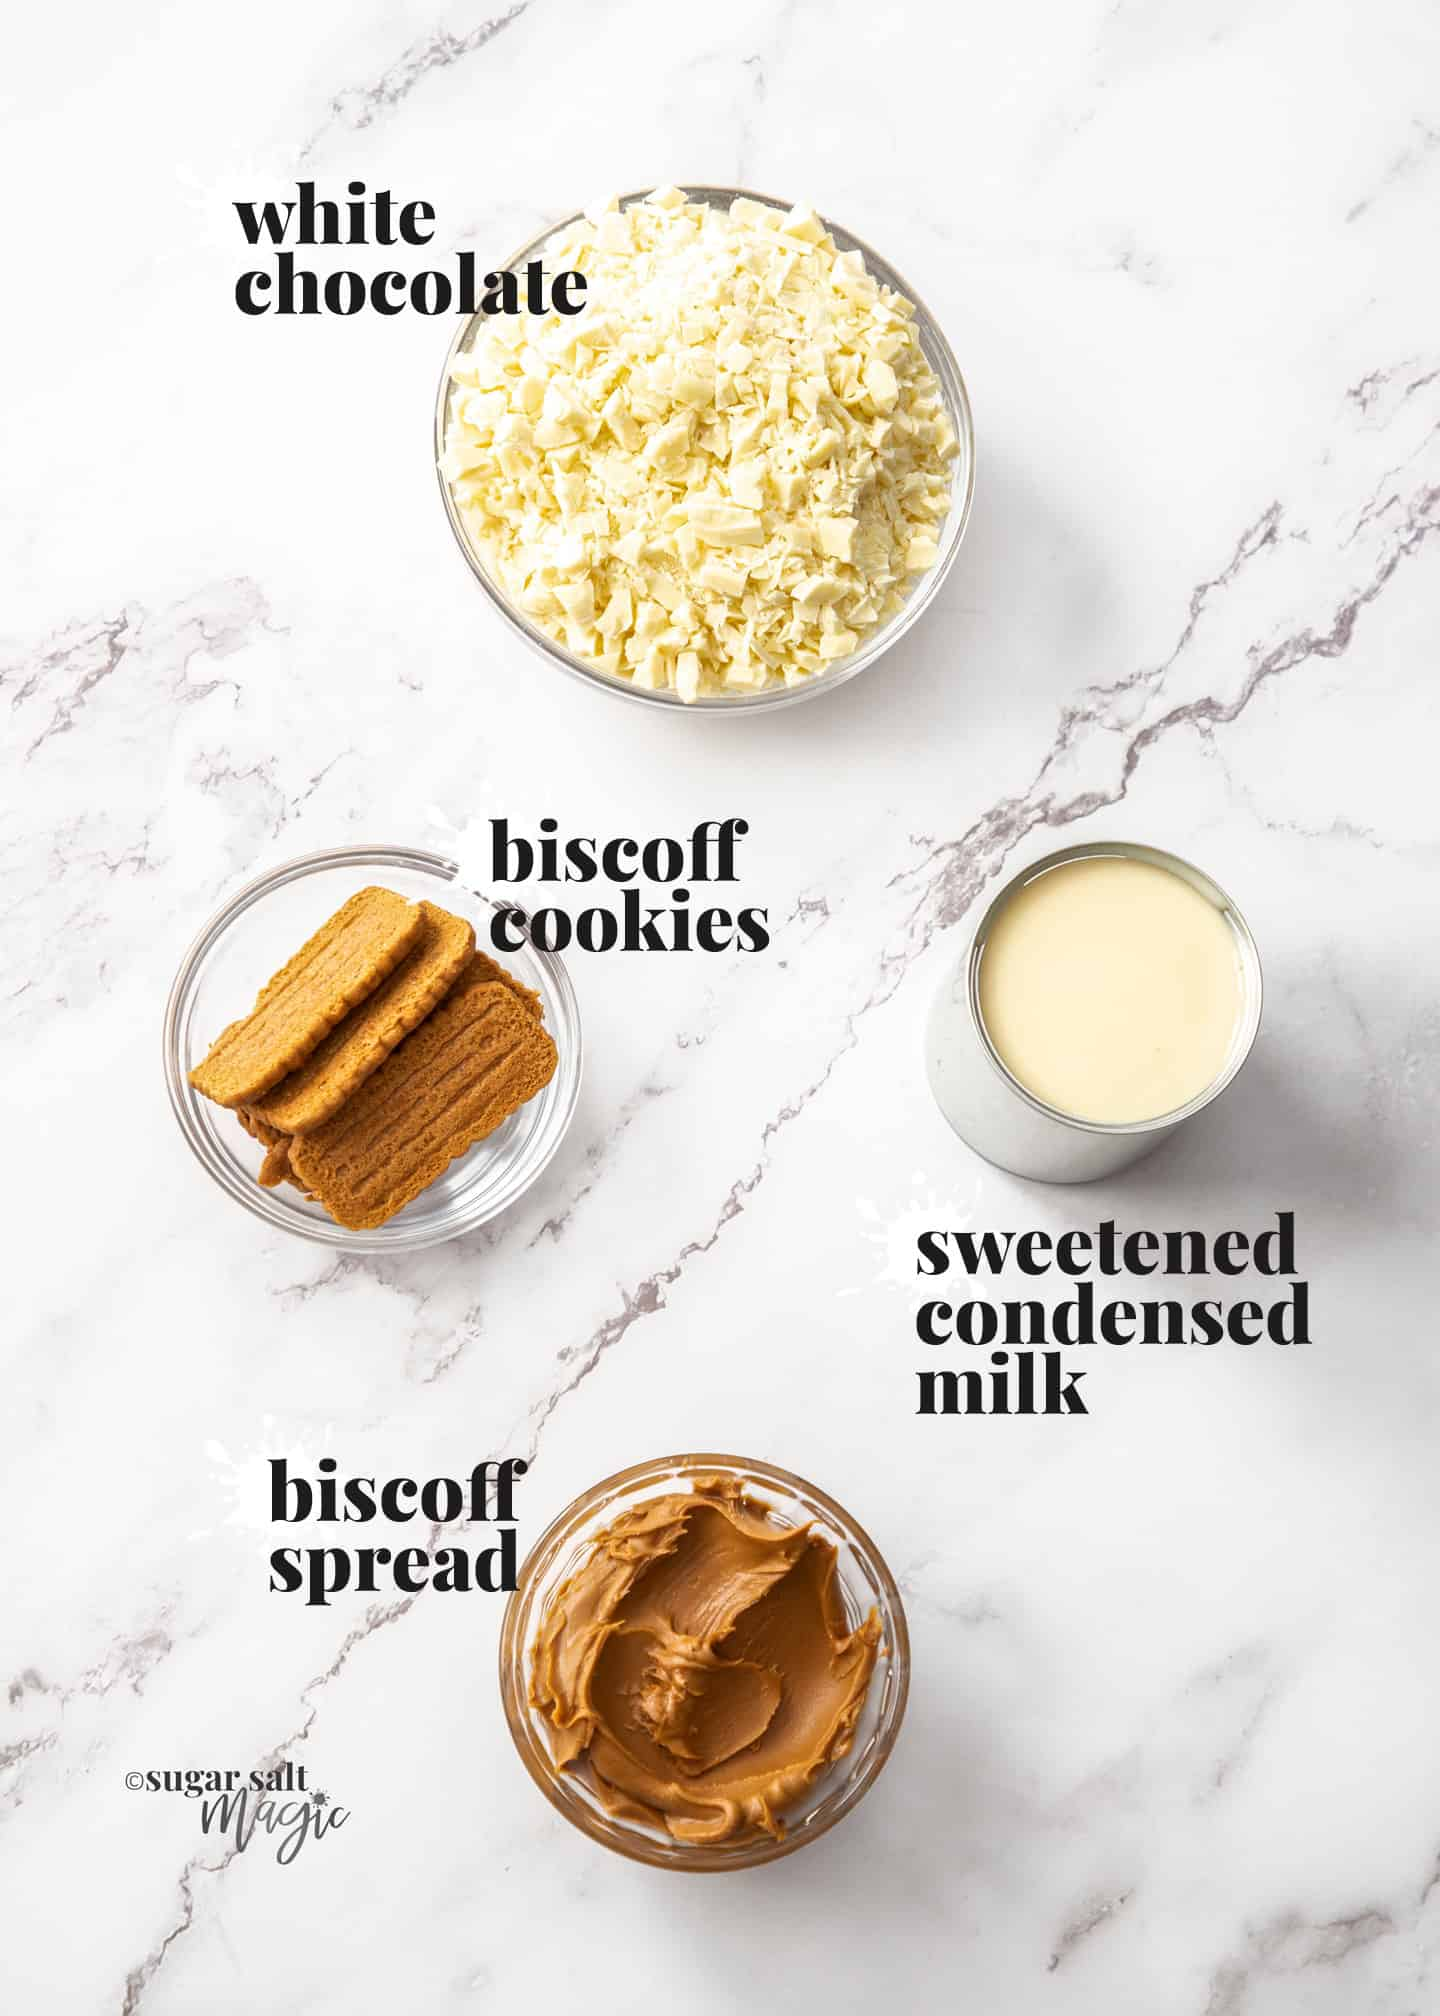 Ingredients for biscoff fudge on a marble benchtop.